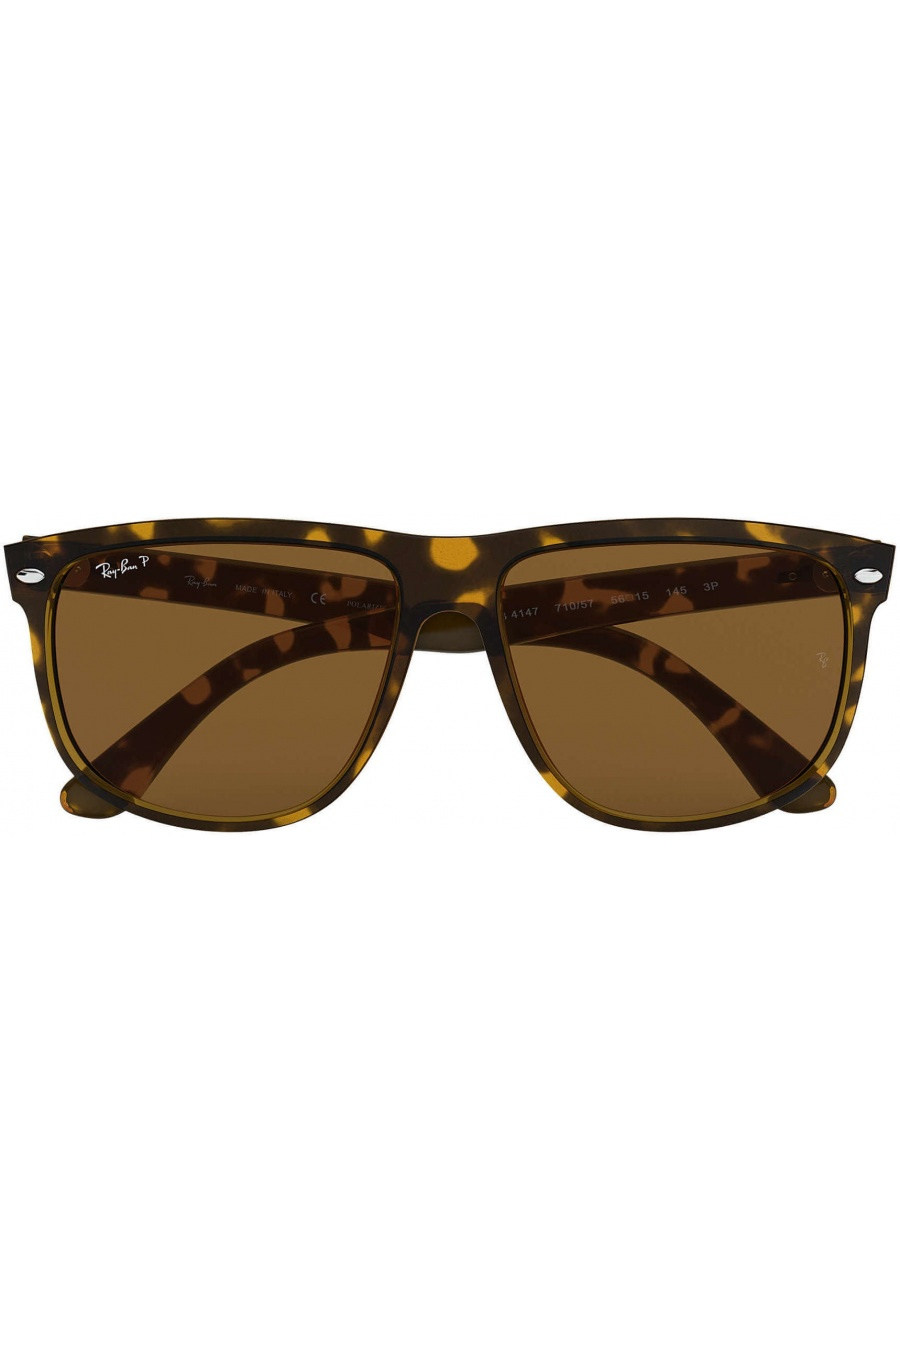 RAY-BAN RB4147 710/51 FRONT